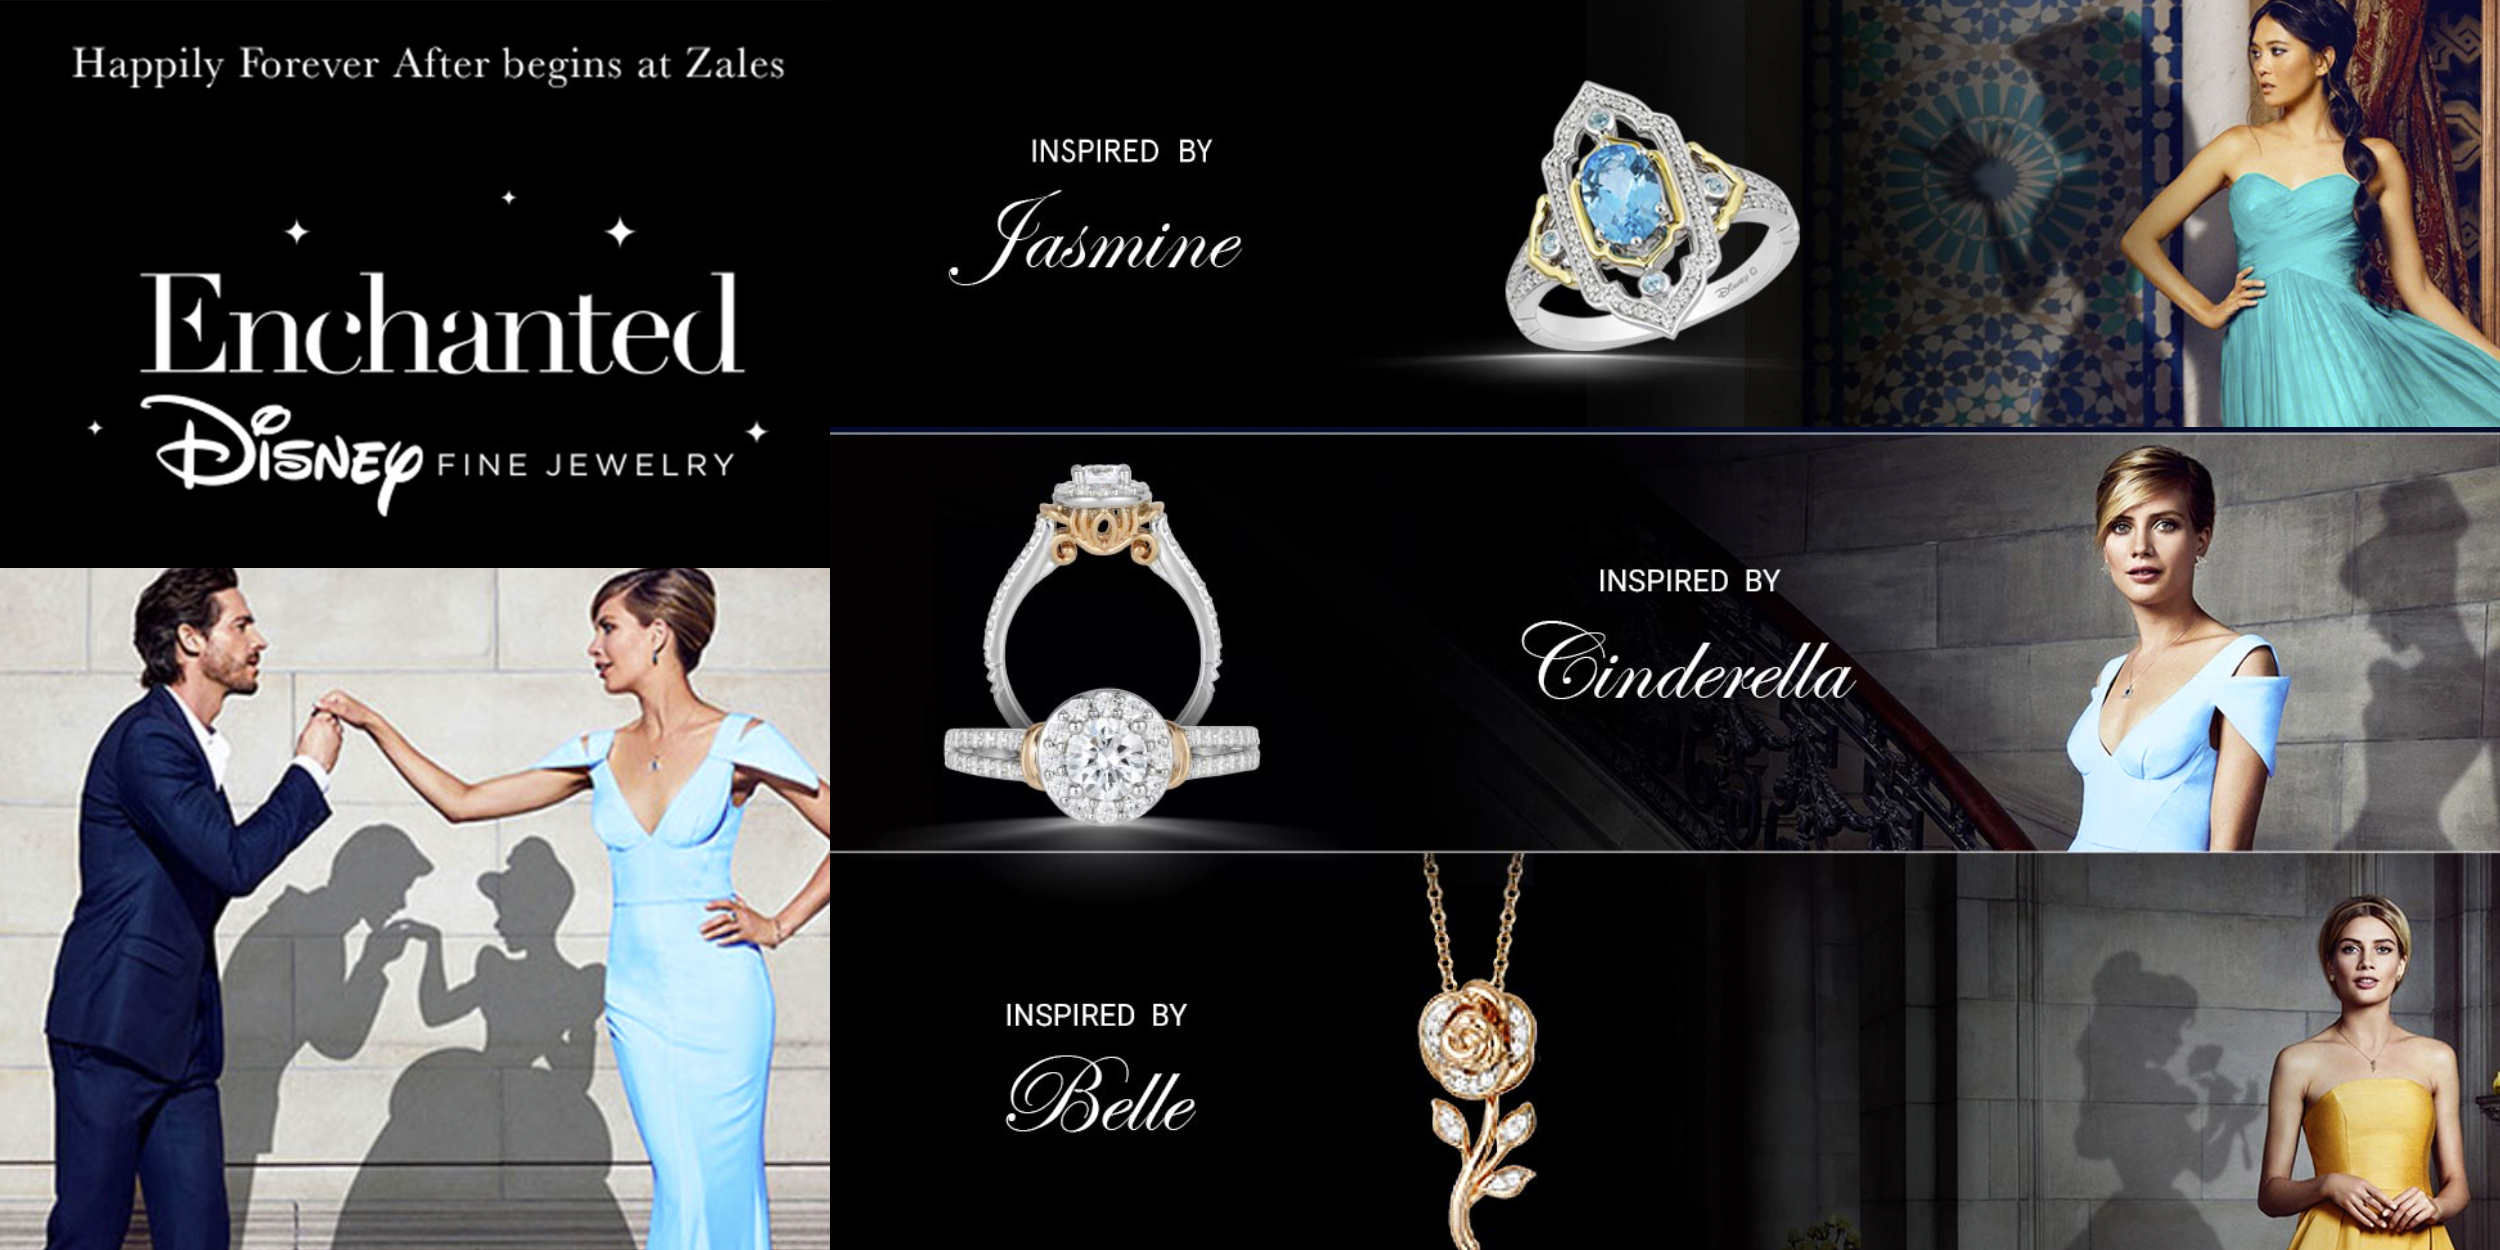 Peoples Unveils Exclusive Enchanted Disney Fine Jewelry Designs Inspired By Disney's Live-Action Aladdin